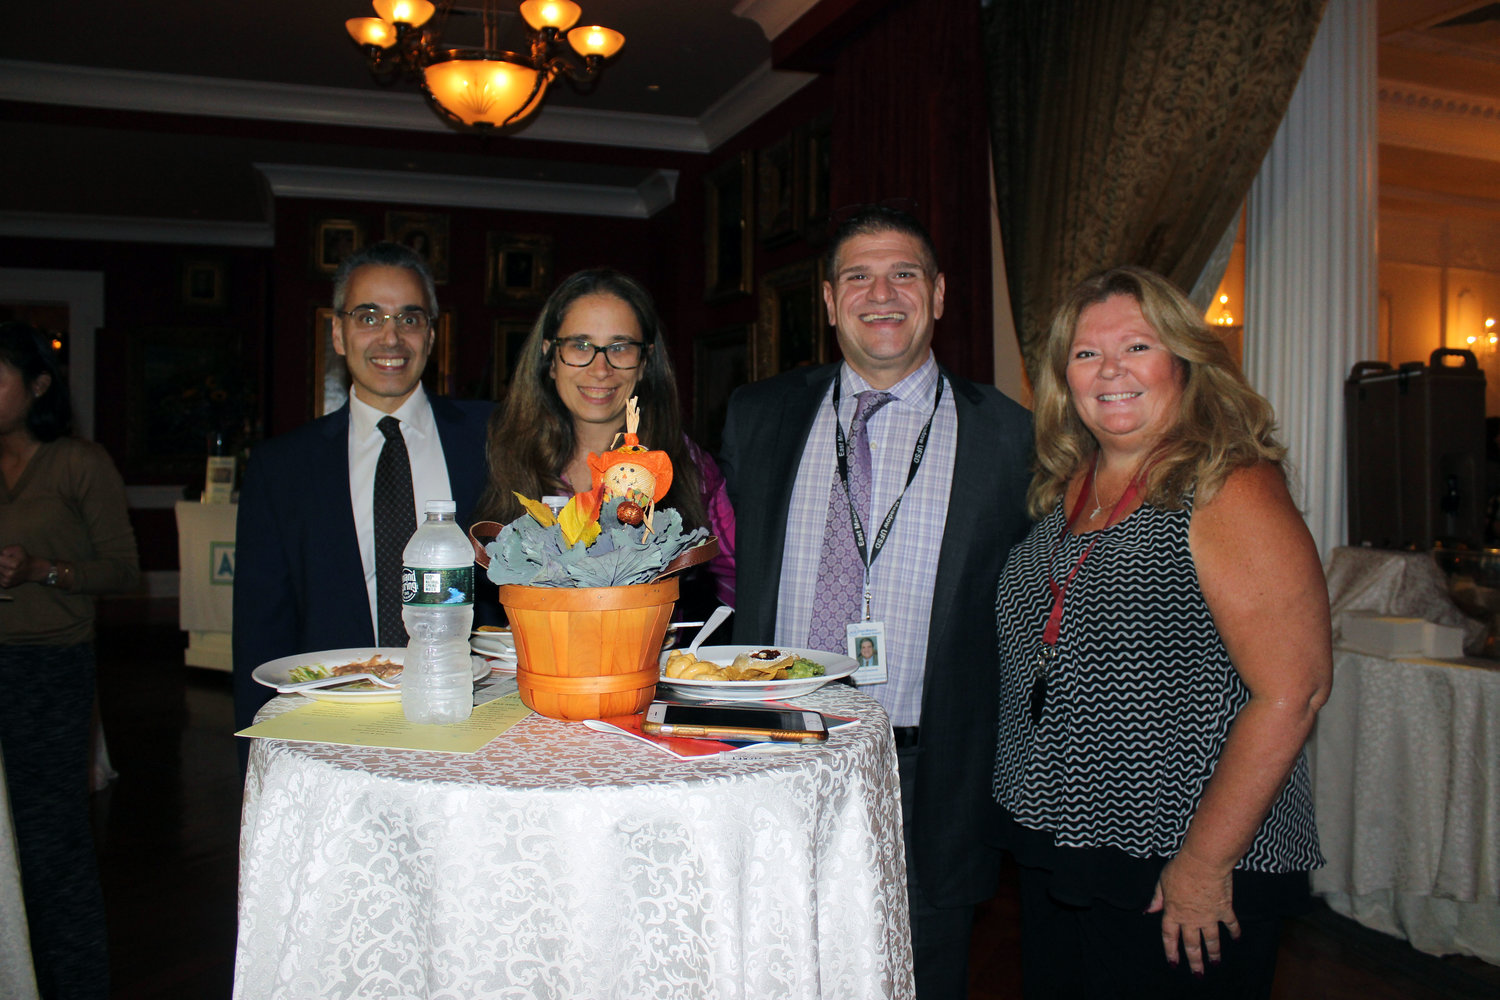 The event drew hundreds of community members, including, from left above, Anthony Russo, the school district's assistant superintendent for personnel and administration; Alisa Baroukh, school board vice president; David Casamento, assistant superintendent for curriculum and instruction; and Eileen Napolitano, a board trustee.